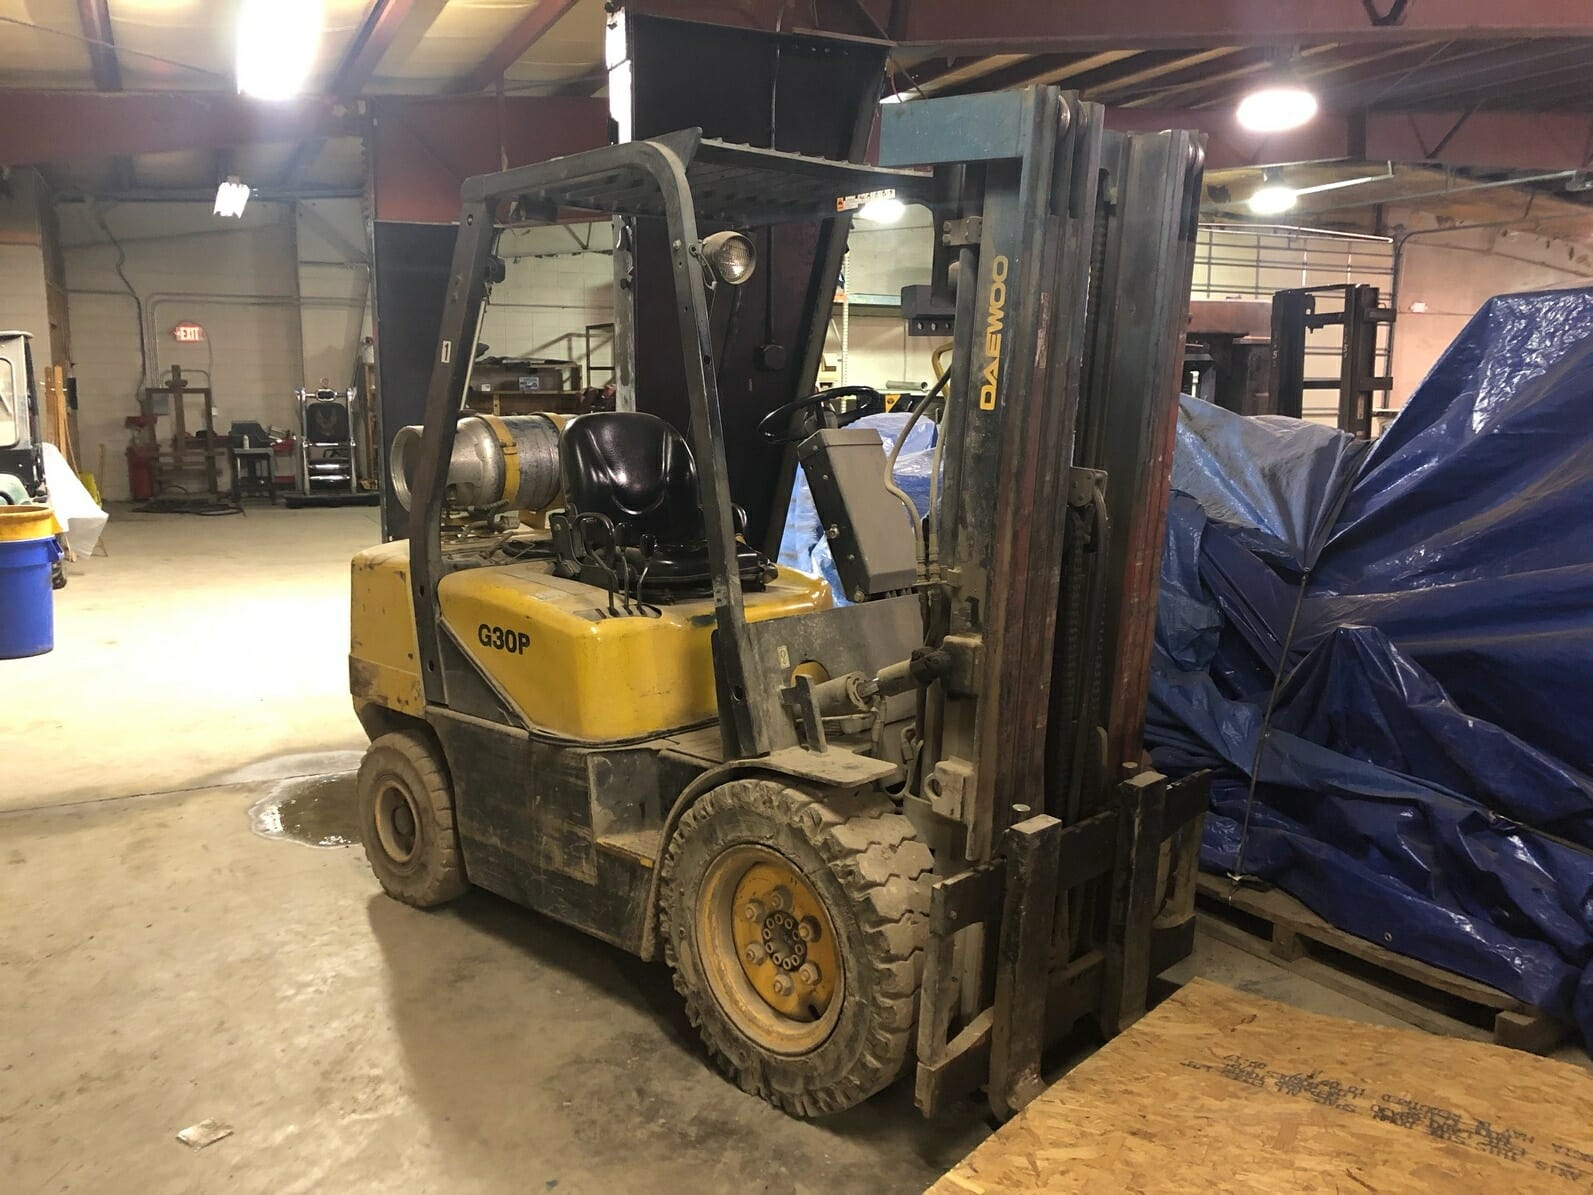 6,000 lb. Capacity Daewoo Forklift For Sale 3 Ton